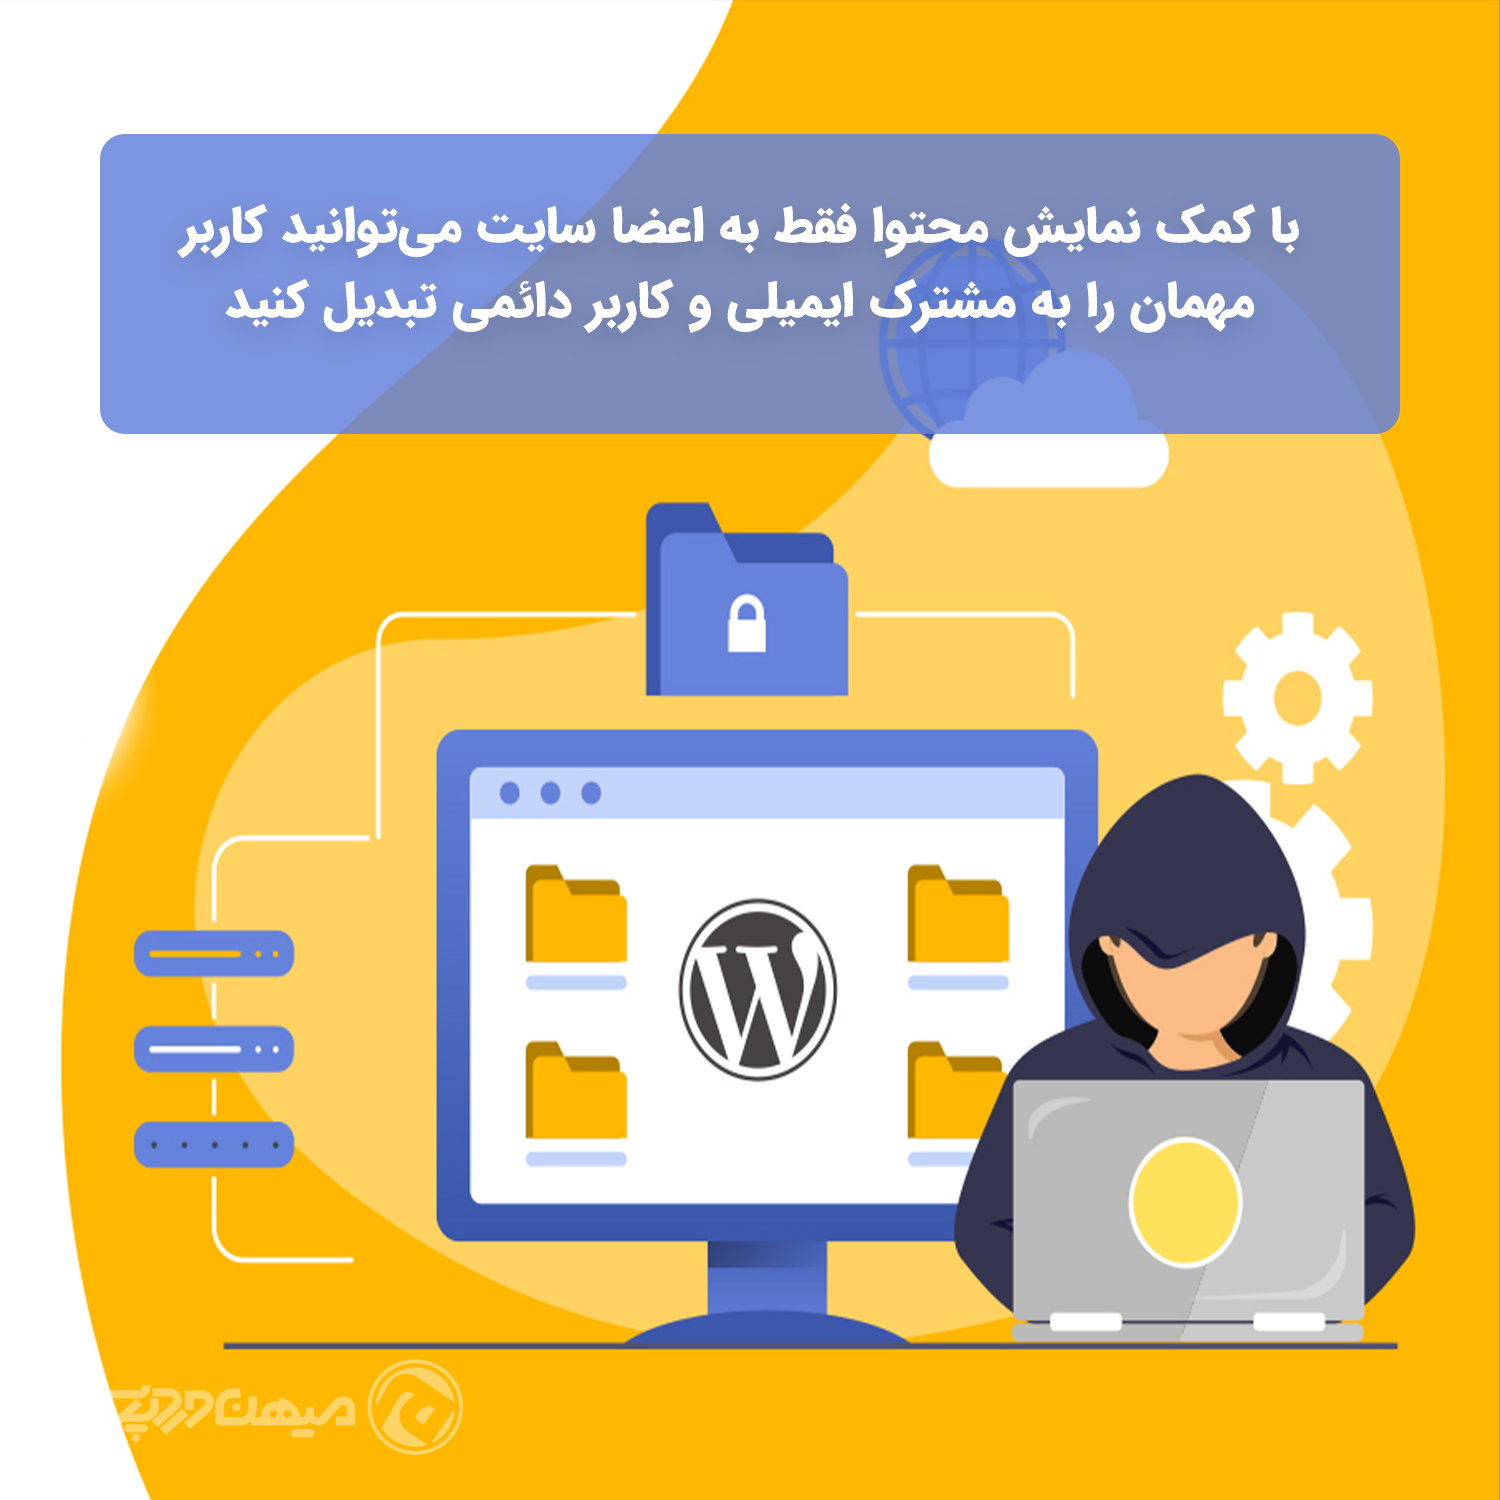 Show only part of the content to members in WordPress